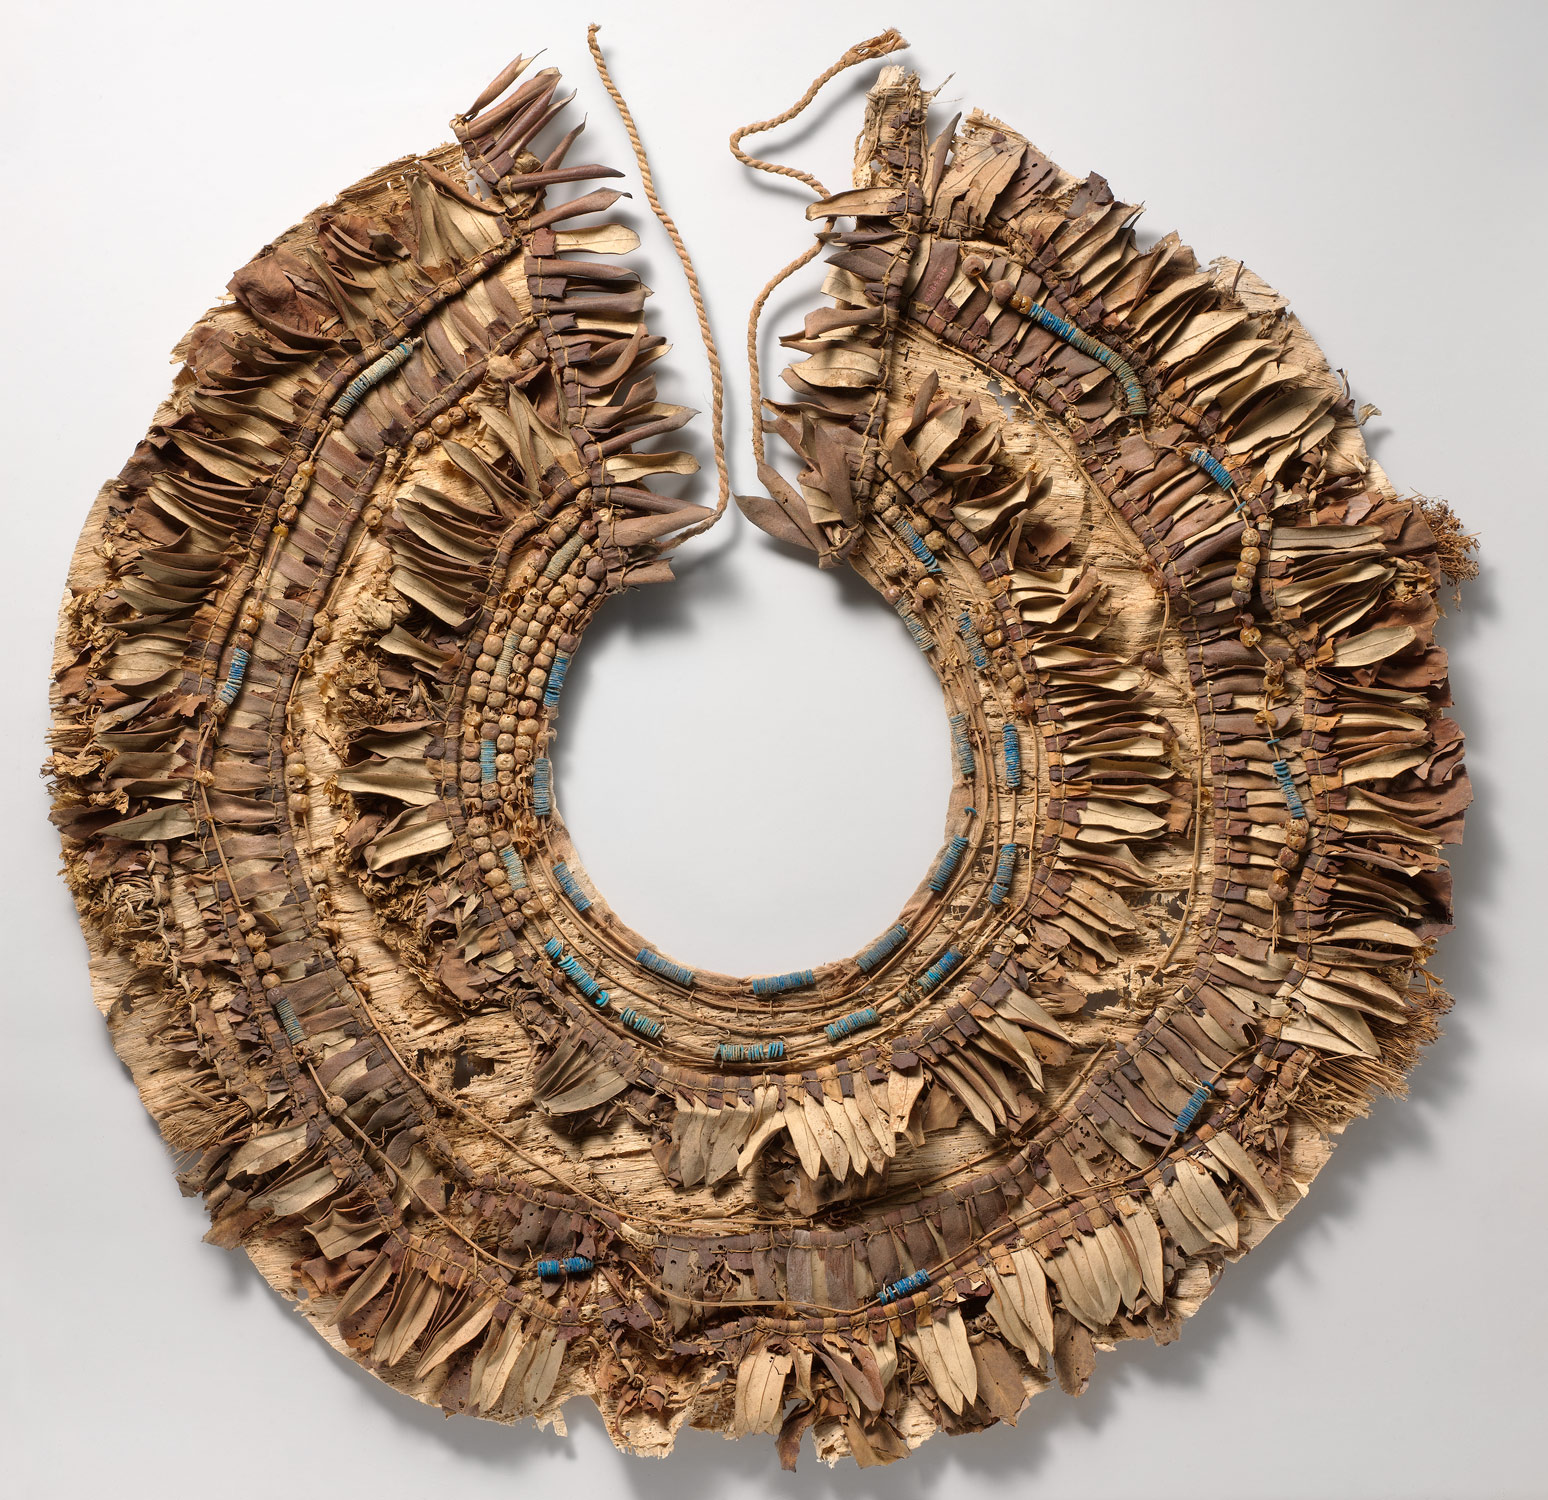 Floral collar from tutankhamuns embalming cache work of art floral collars from tutankhamuns embalming cache izmirmasajfo